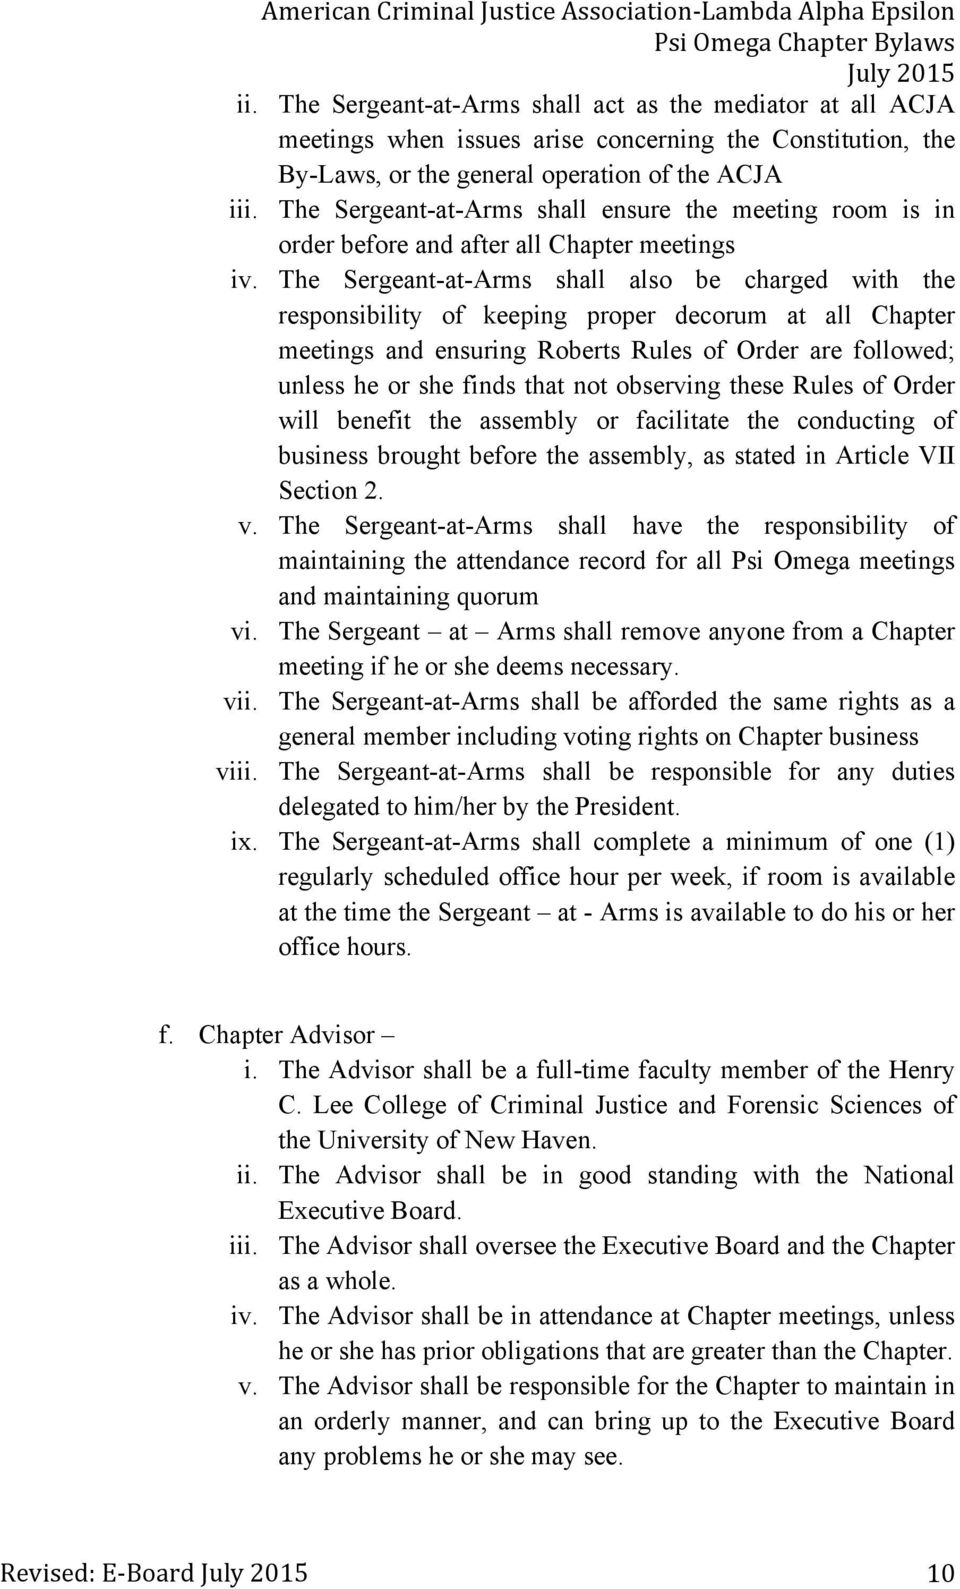 The Sergeant-at-Arms shall also be charged with the responsibility of keeping proper decorum at all Chapter meetings and ensuring Roberts Rules of Order are followed; unless he or she finds that not